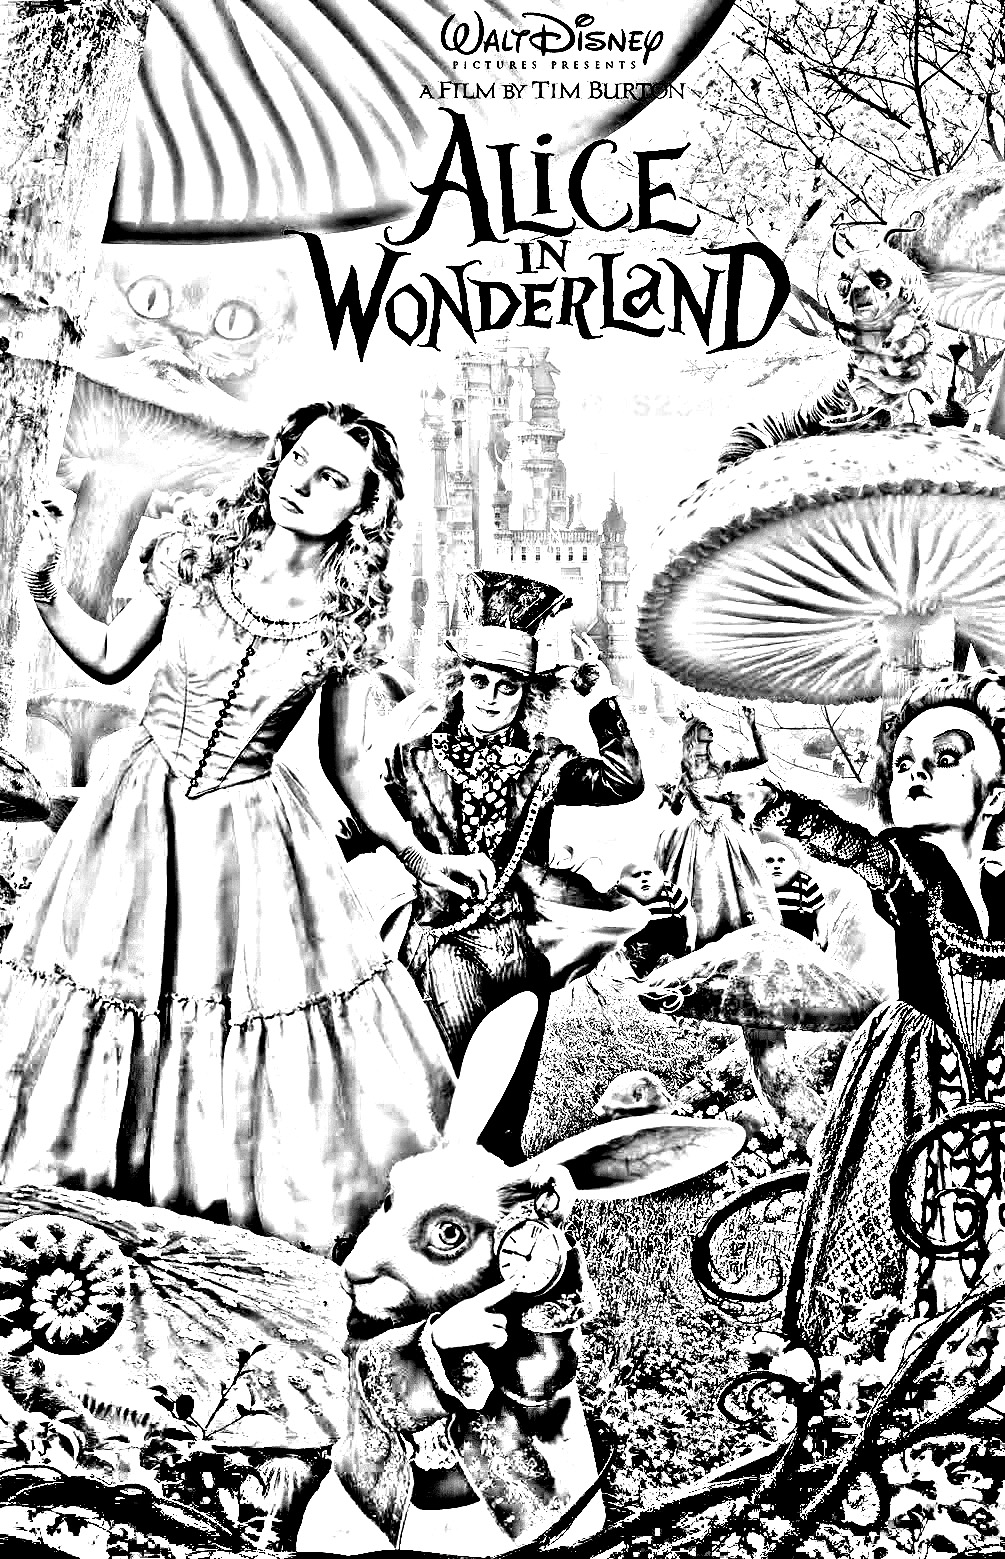 Tim burtons alice in wonderland movie poster in black white